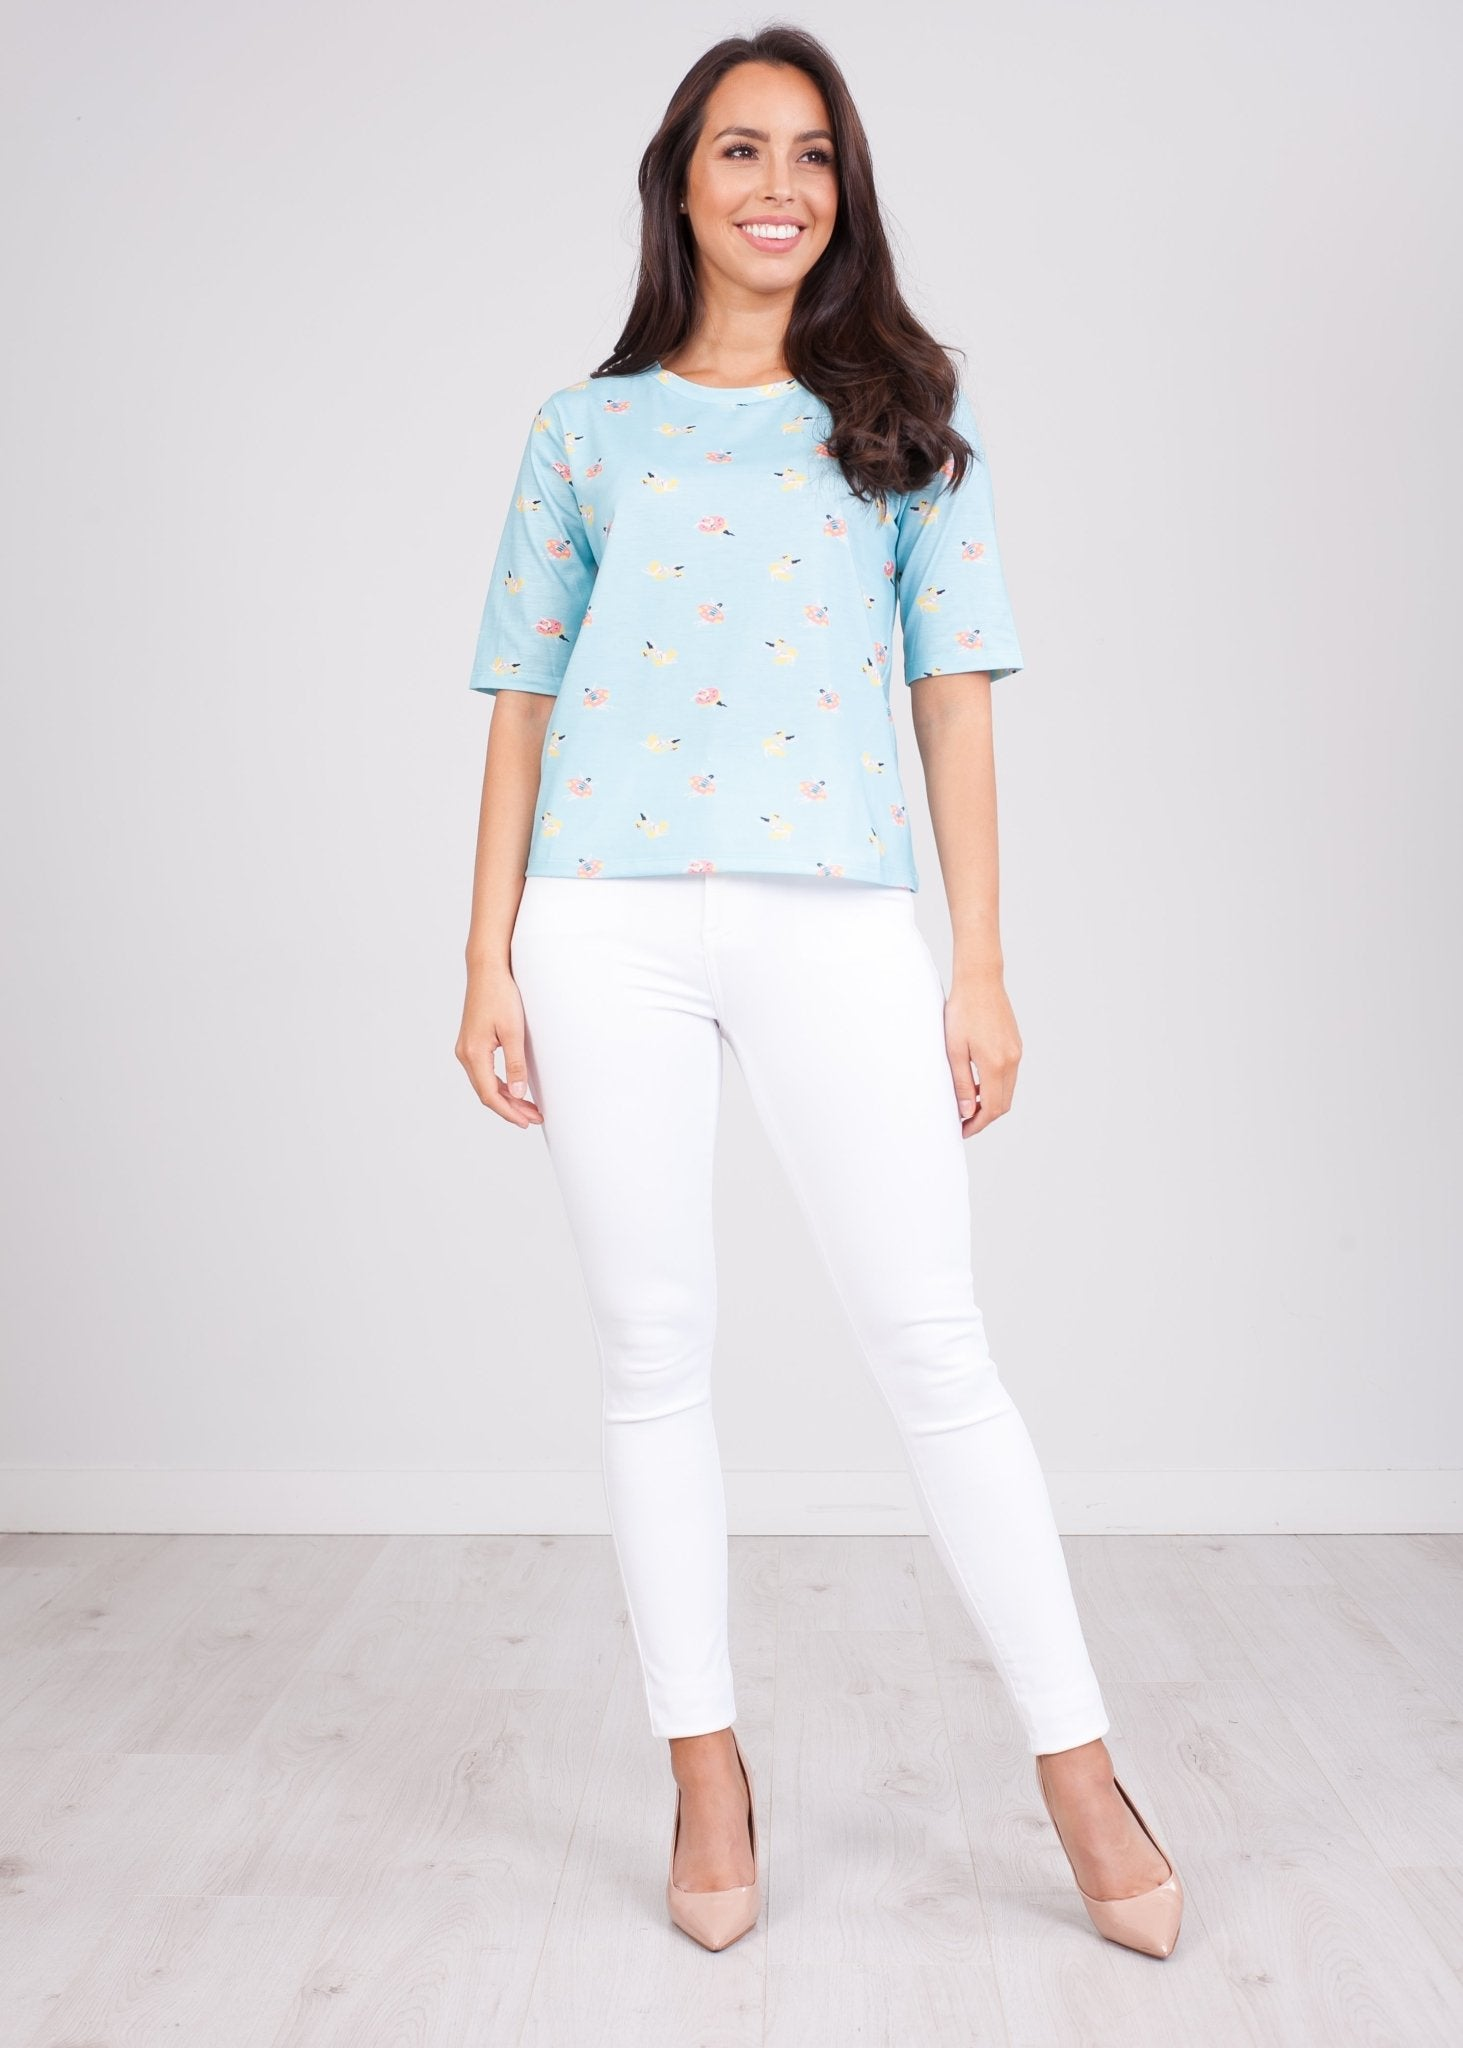 Frankie Blue Printed T-Shirt - The Walk in Wardrobe